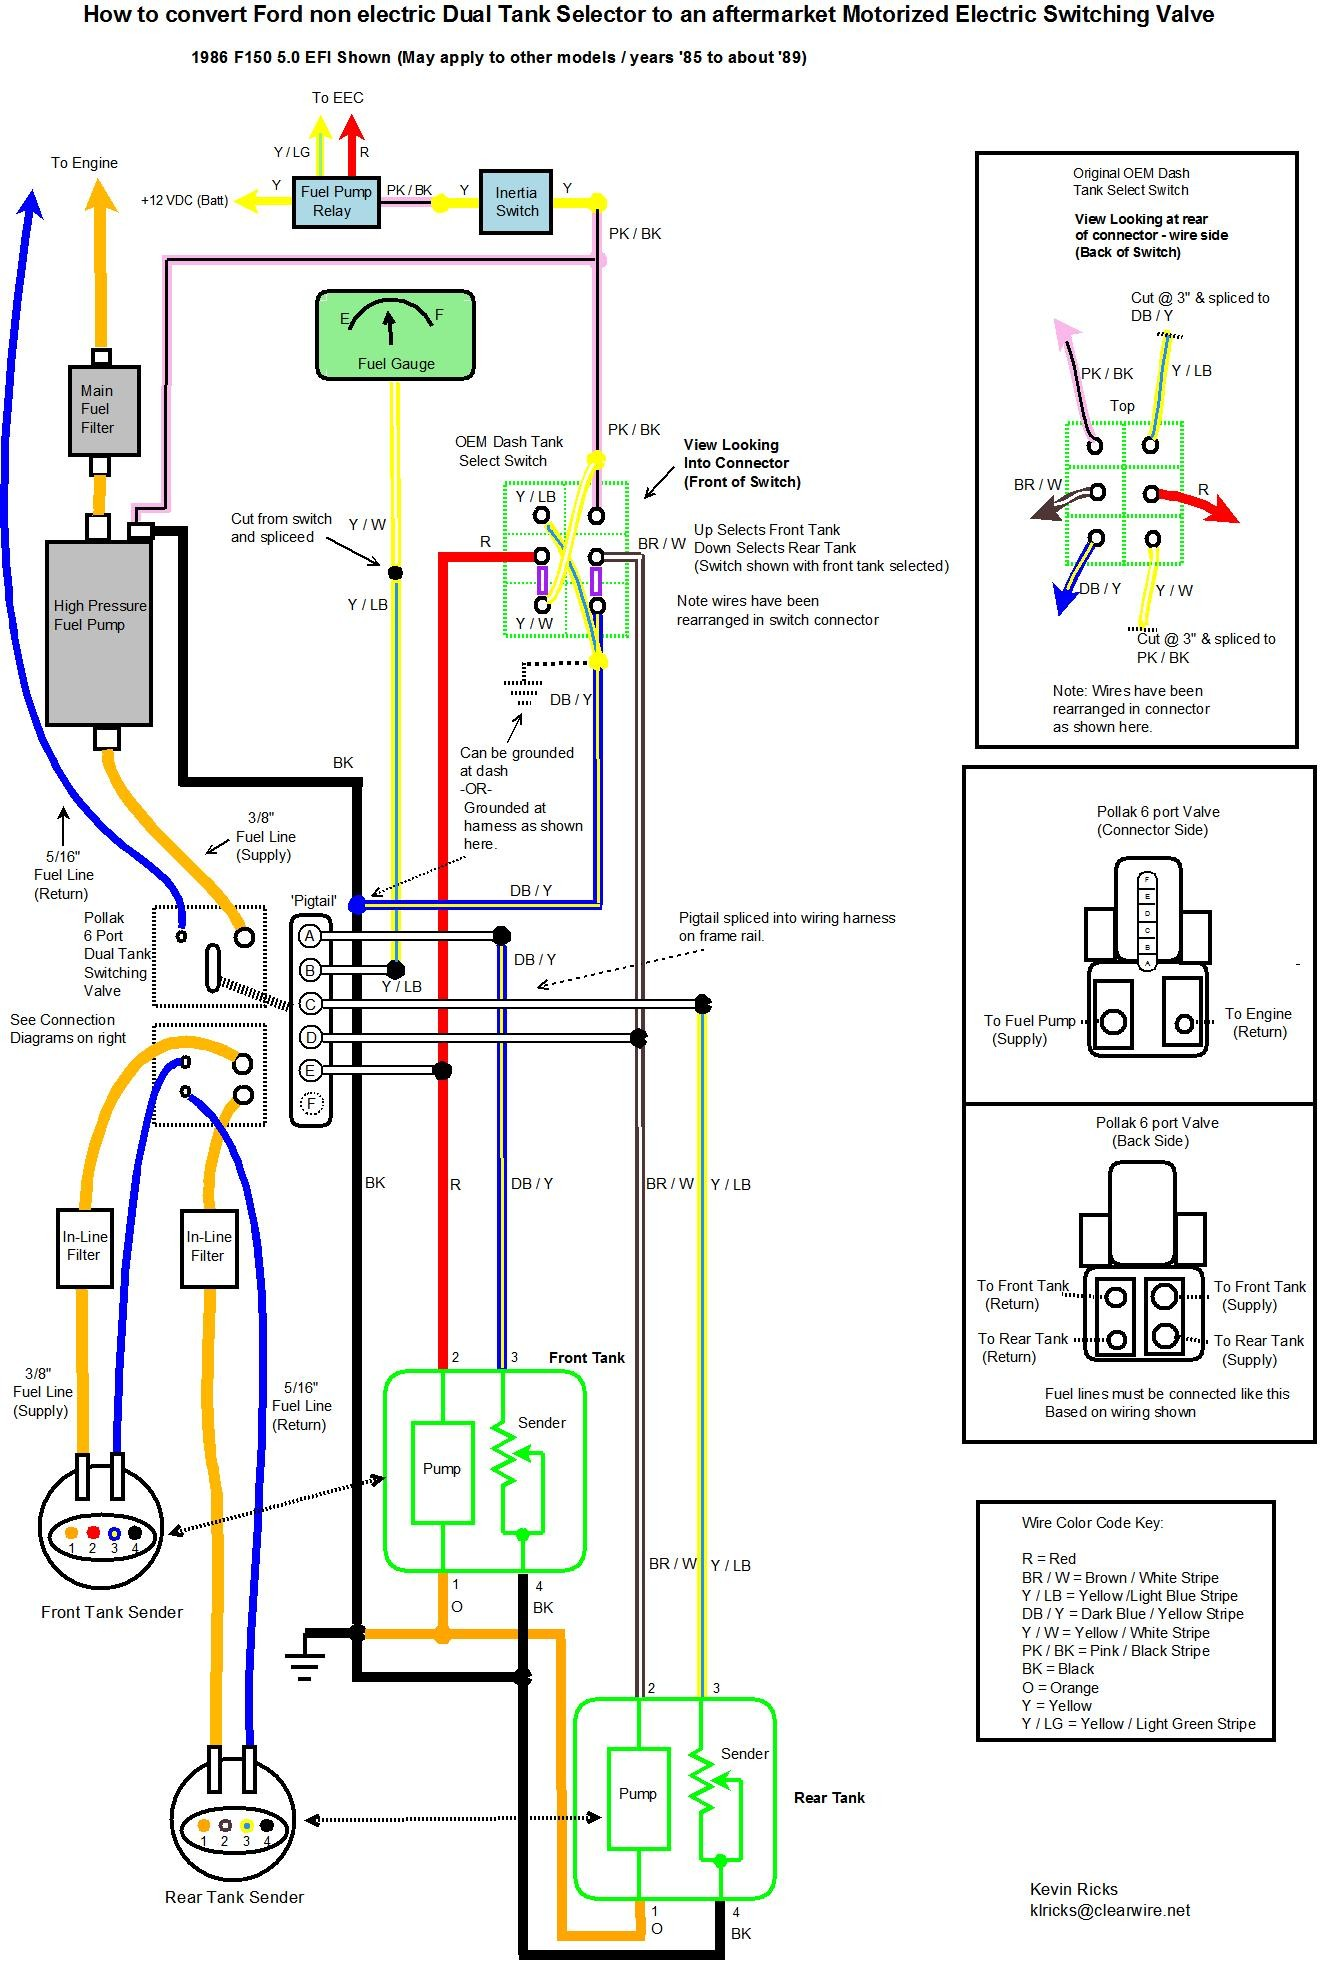 1996 Ford F150 Dual Fuel Tank Diagram : diagram, Diagram, Wiring, Export, End-enter, End-enter.congressosifo2018.it